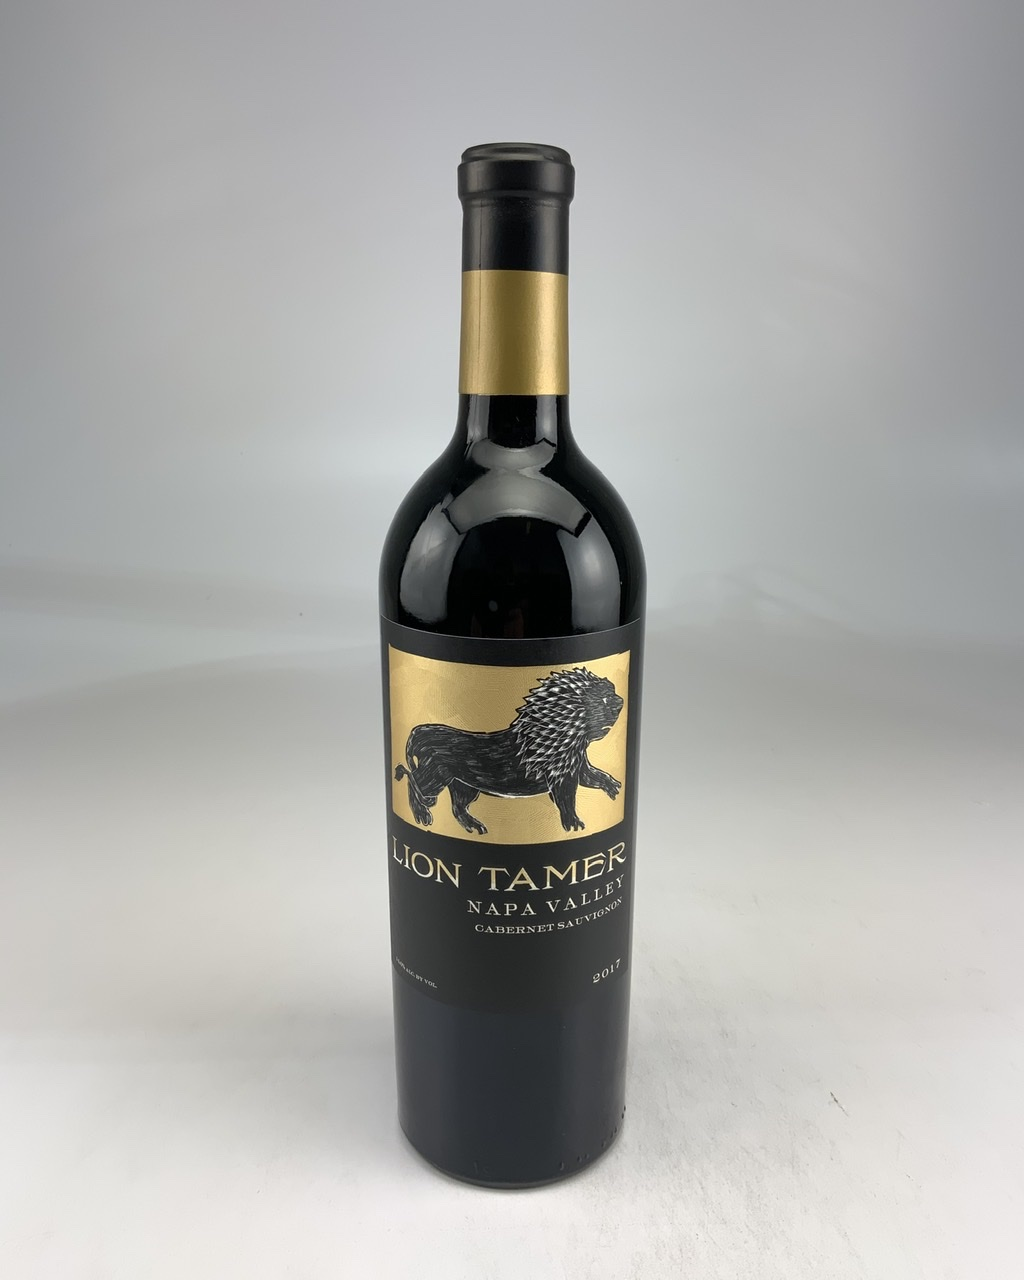 2017 The Hess Collection Lion Tamer Cabernet Sauvignon, Napa Valley RP--91